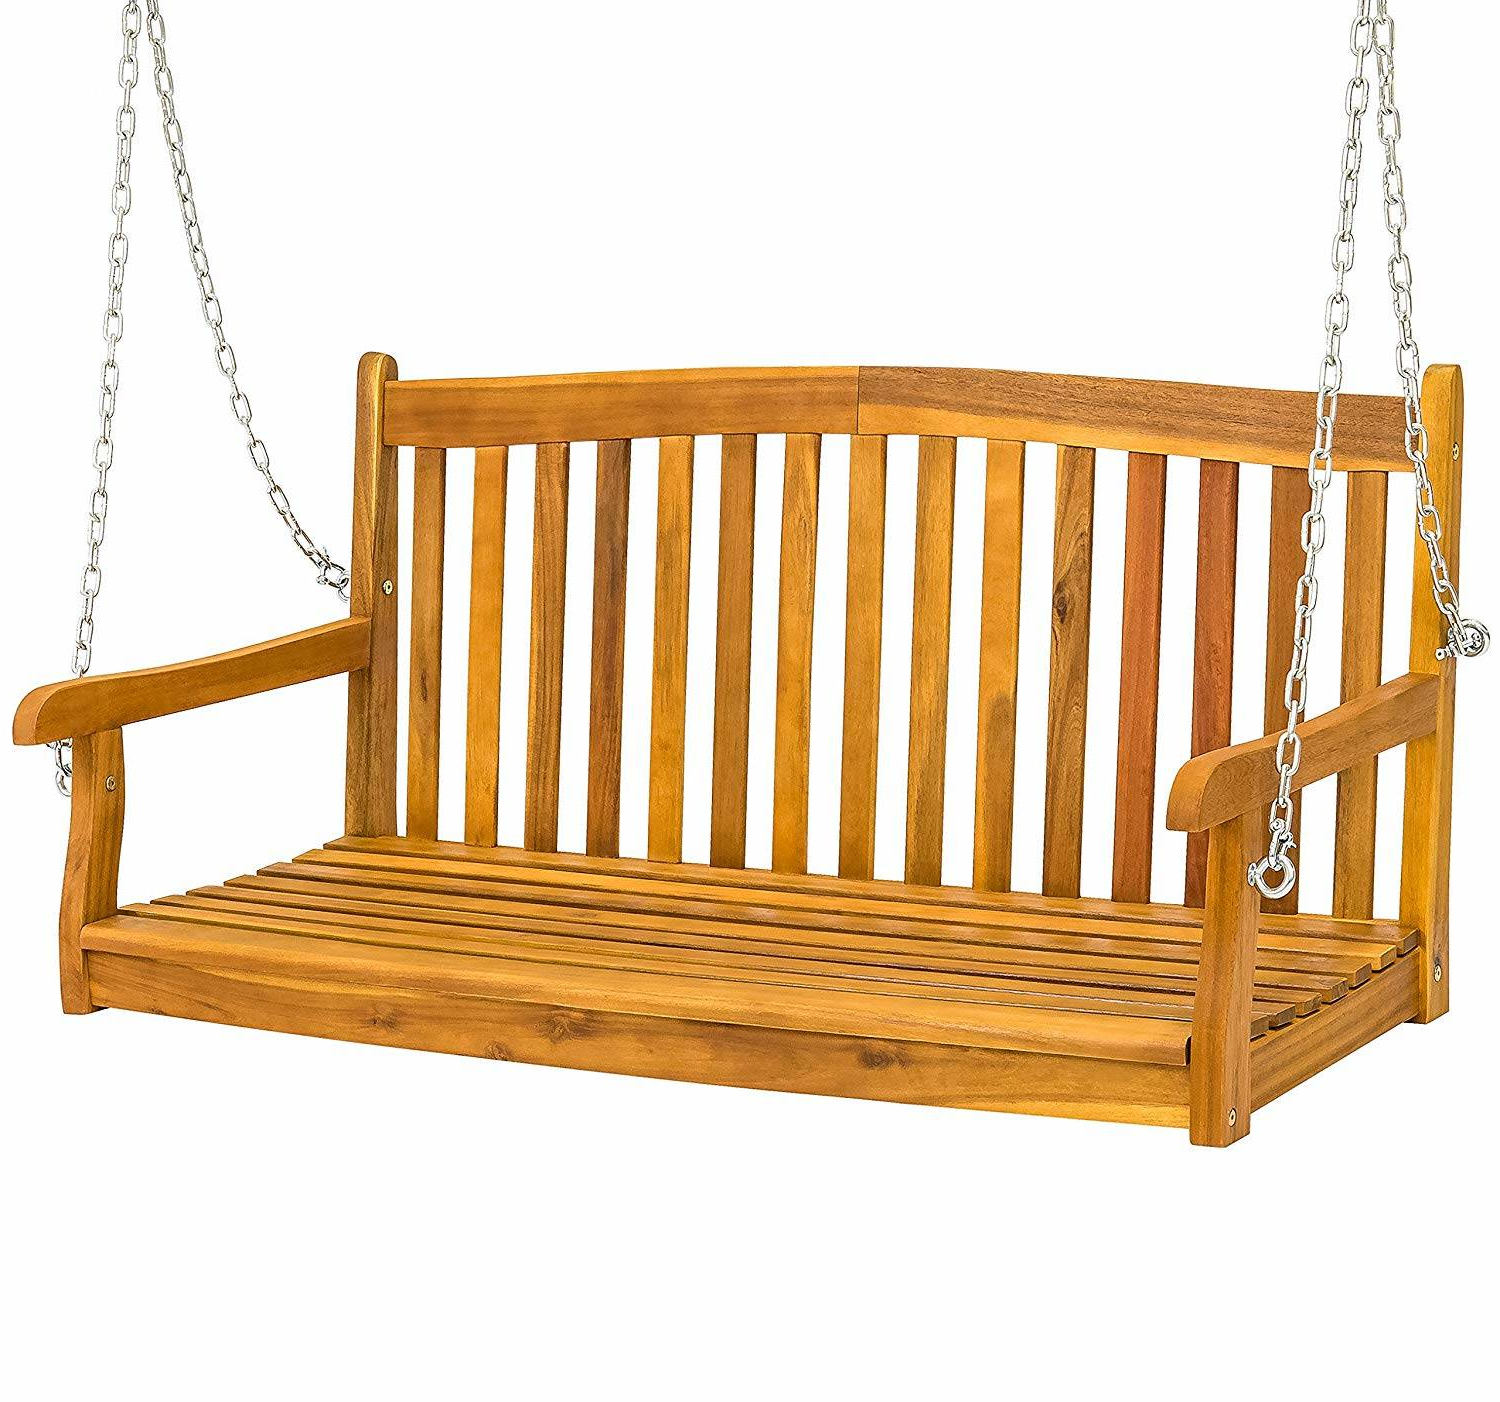 2019 Porch Swings With Canopy Within Outstanding Wooden Kit Porch Bench Swing Furniture Patio (View 22 of 30)